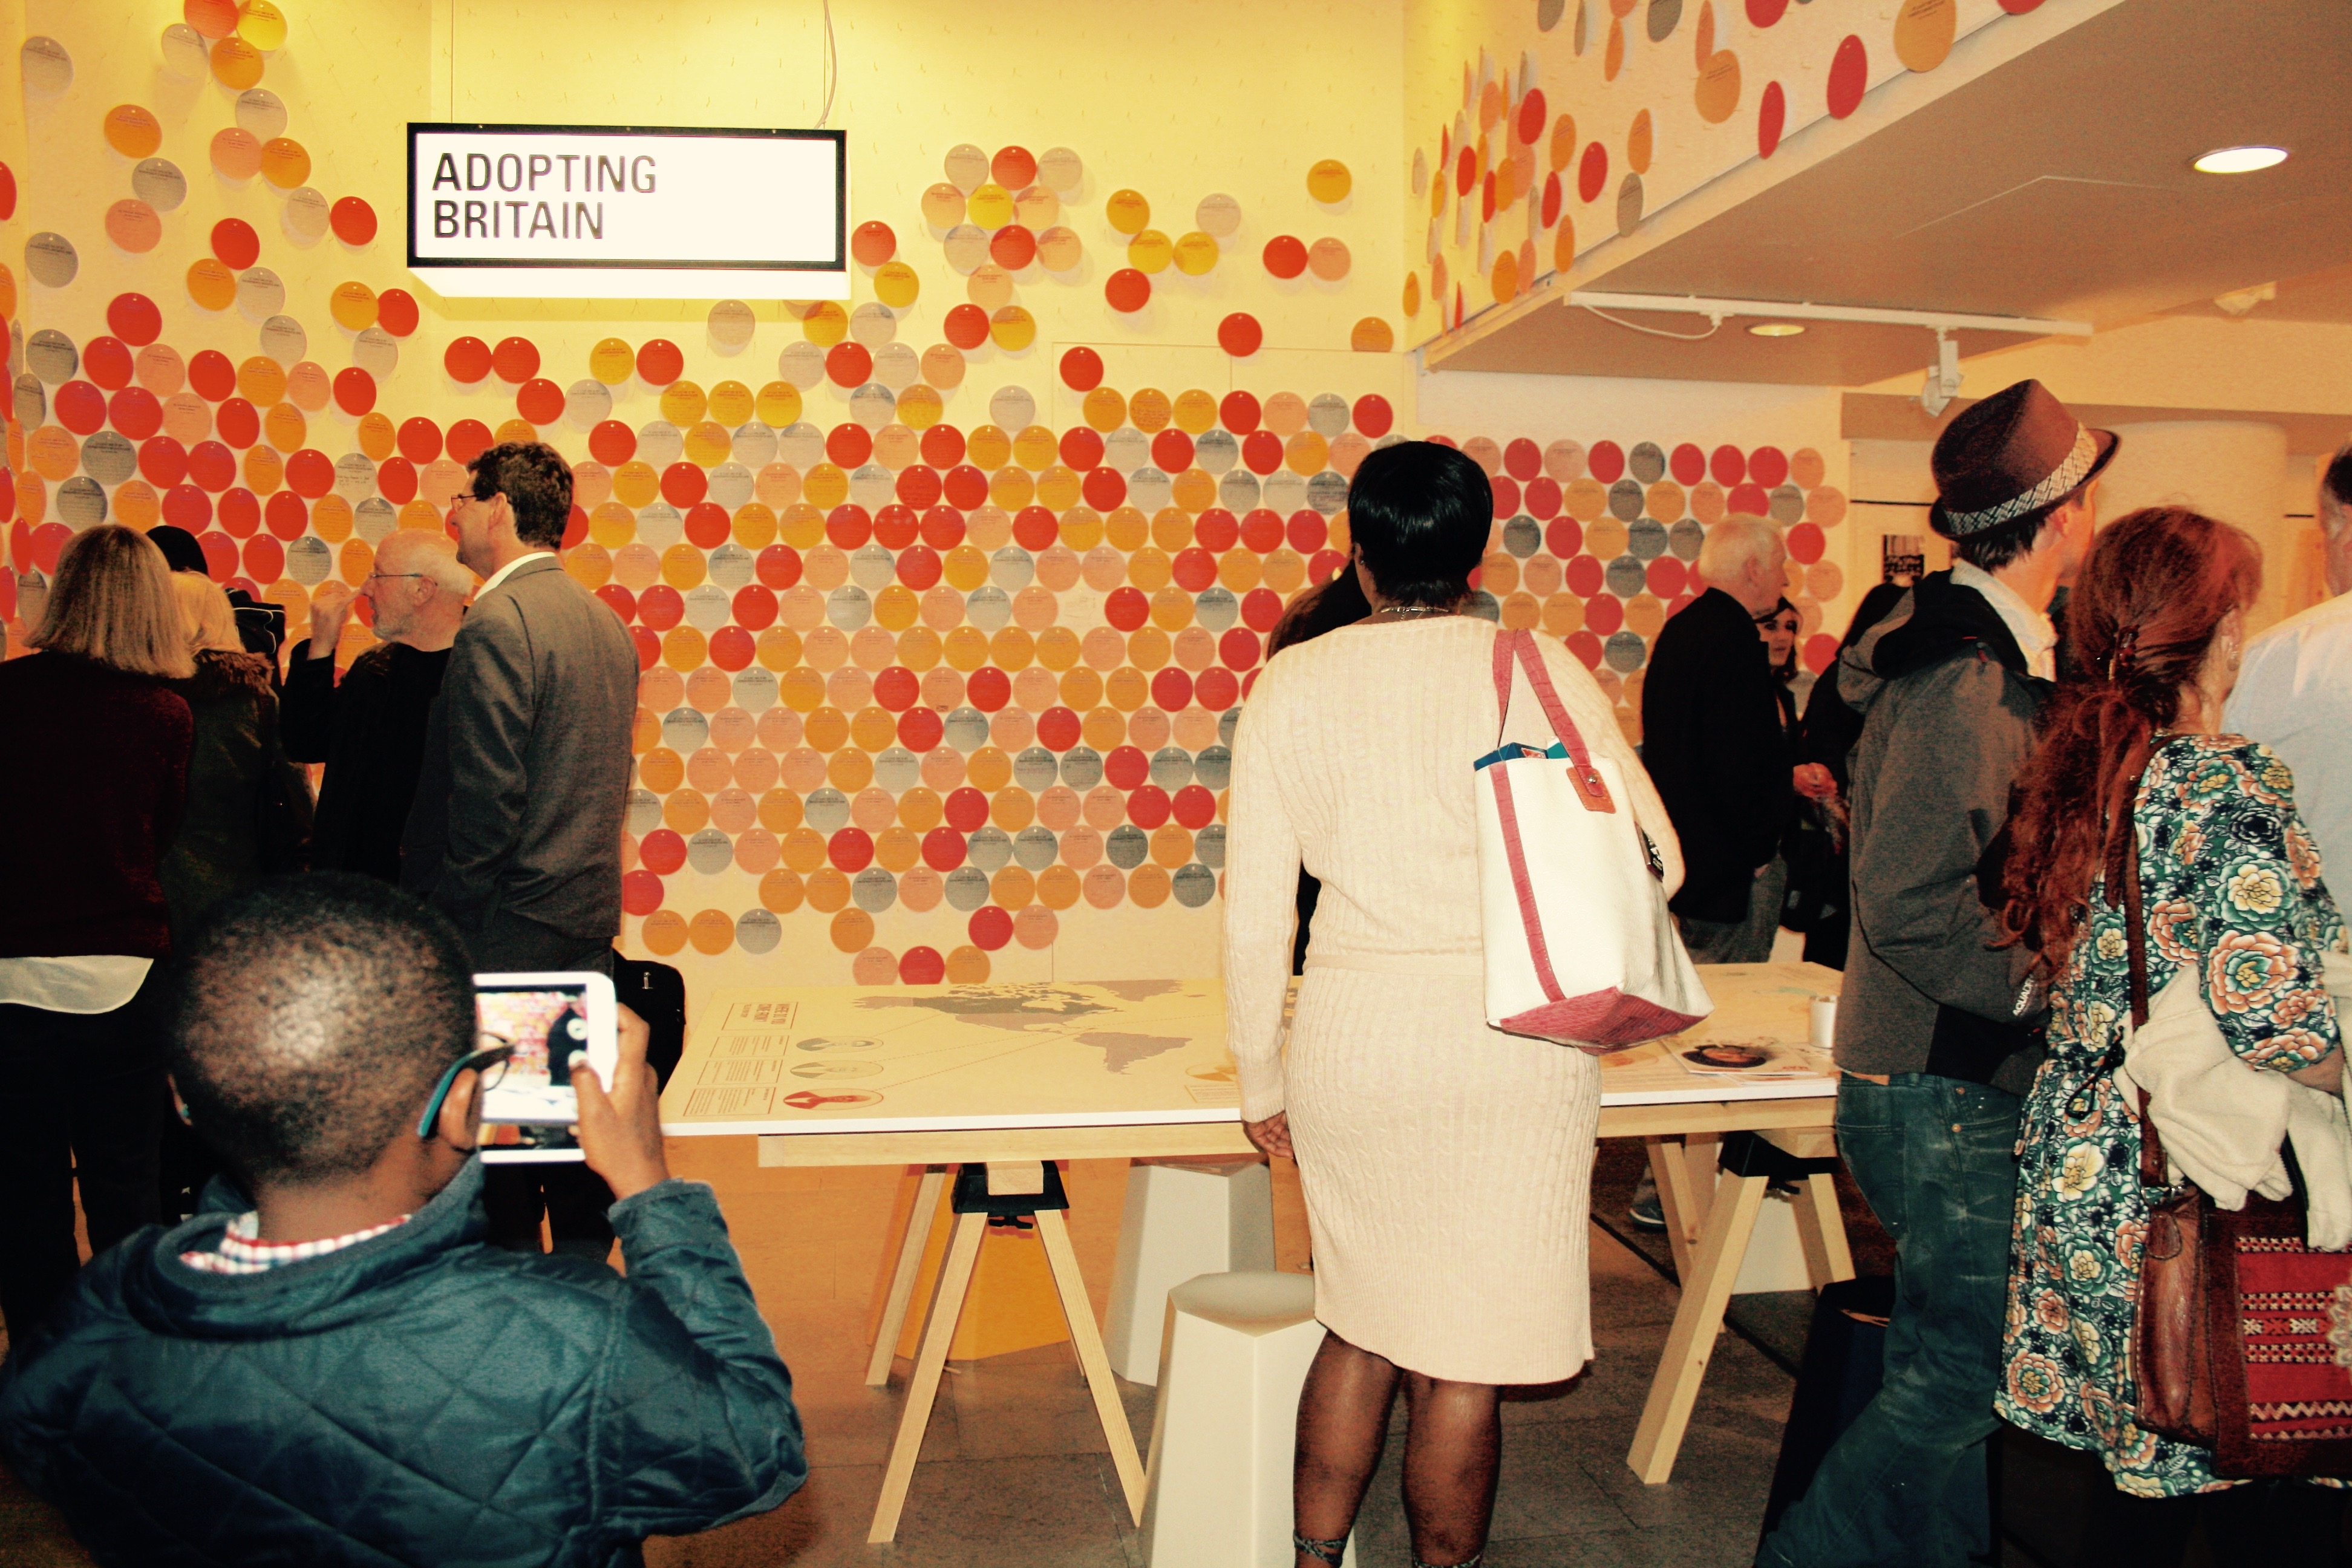 Visitors look at paper discs on wall, which visitors have written their migration/non-migration stories on before hanging up. A young boy in the foreground captures the scene on a tablet camera.